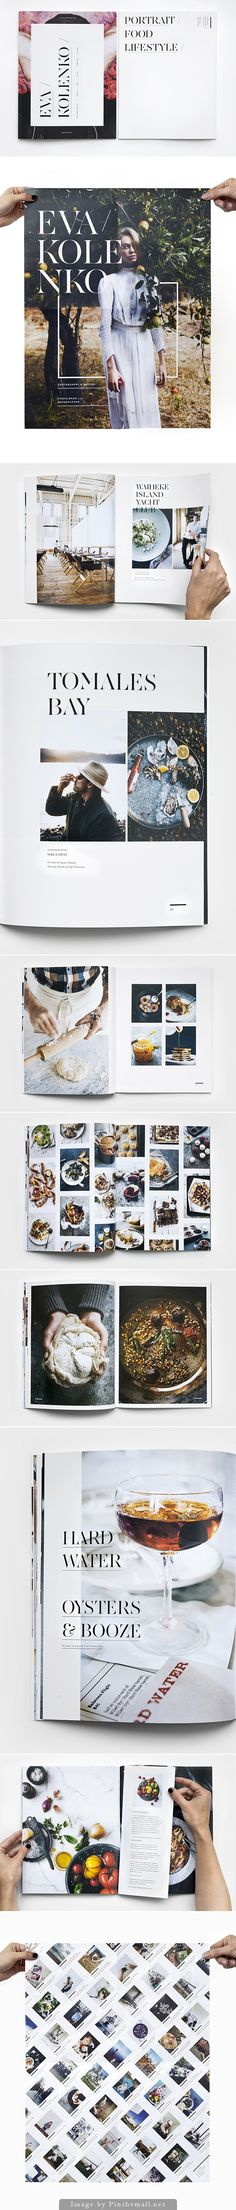 design and more on Pinterest | 123 Pins